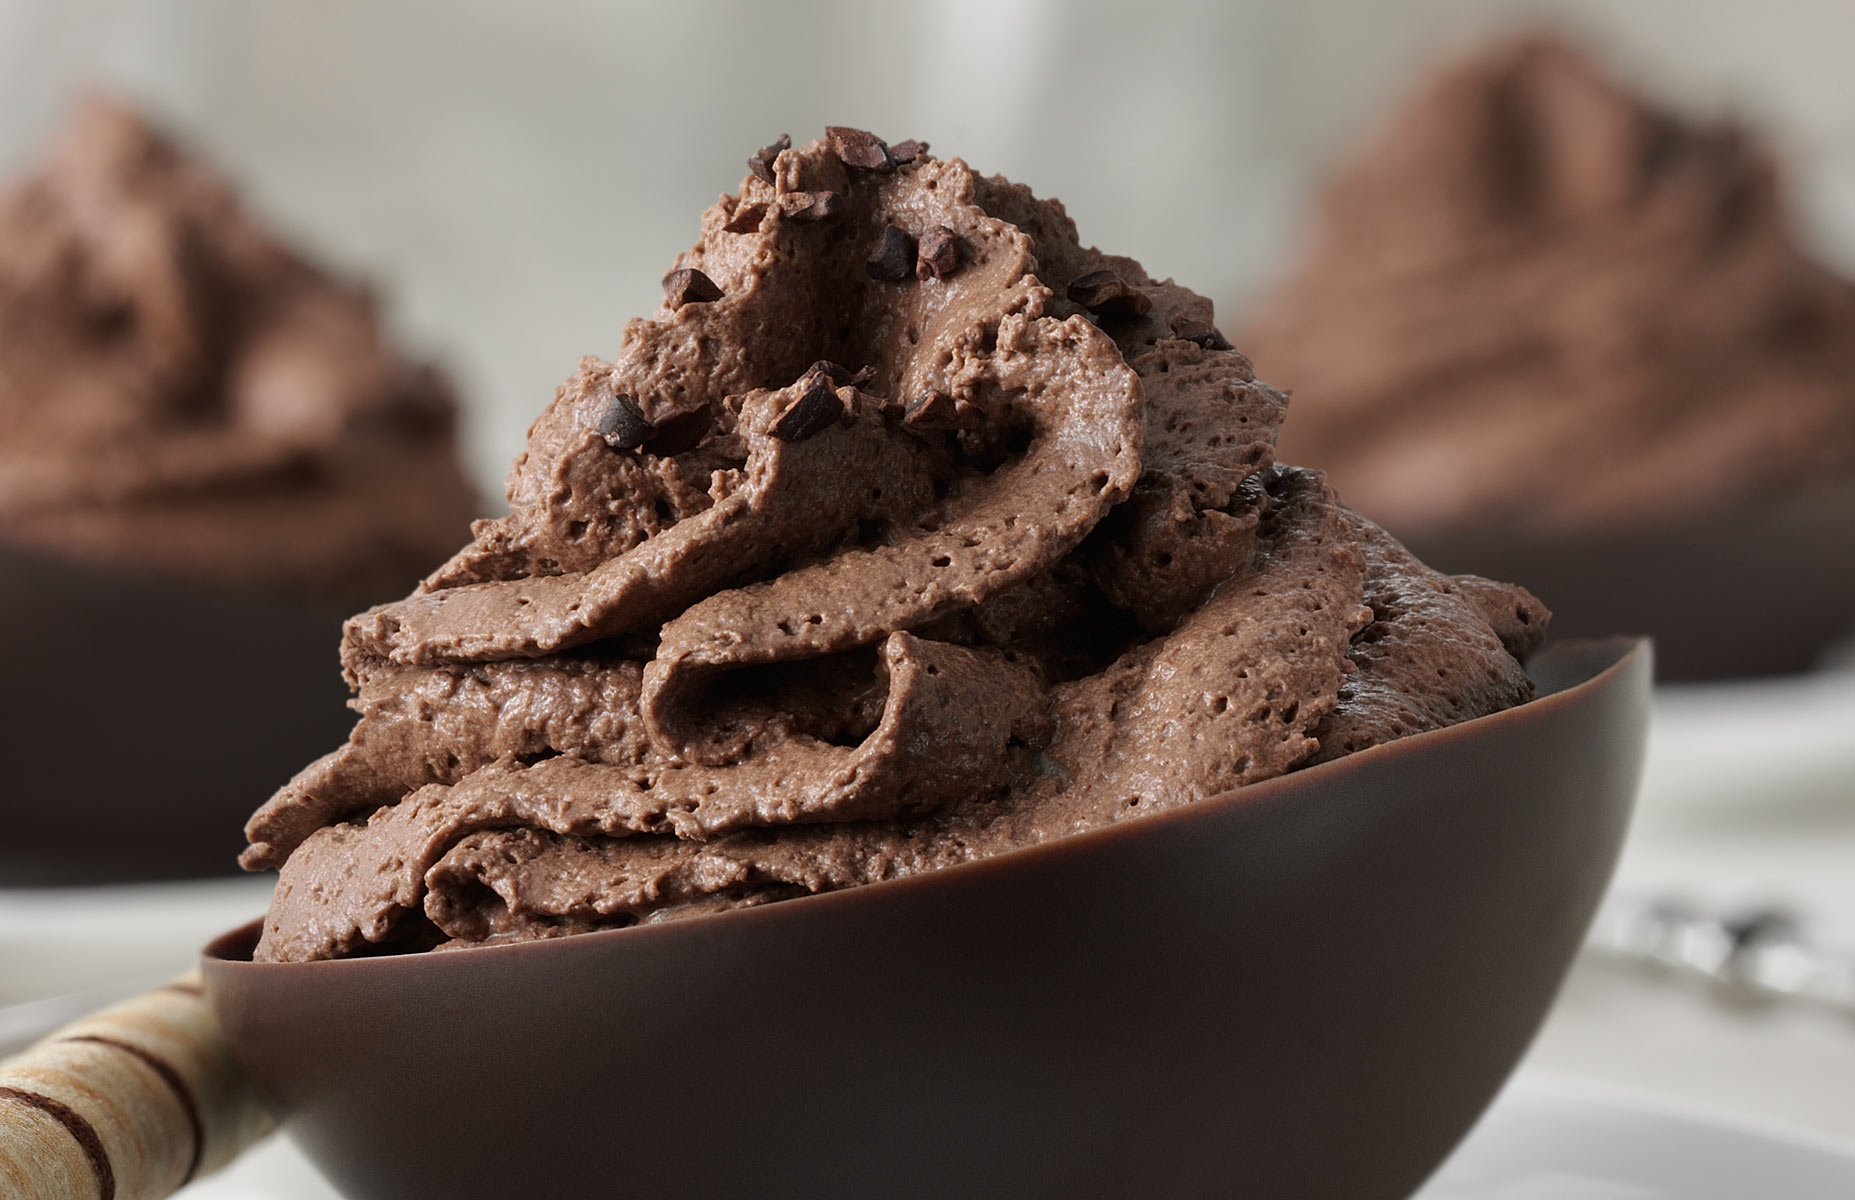 Chocolate Bowls and Mousse